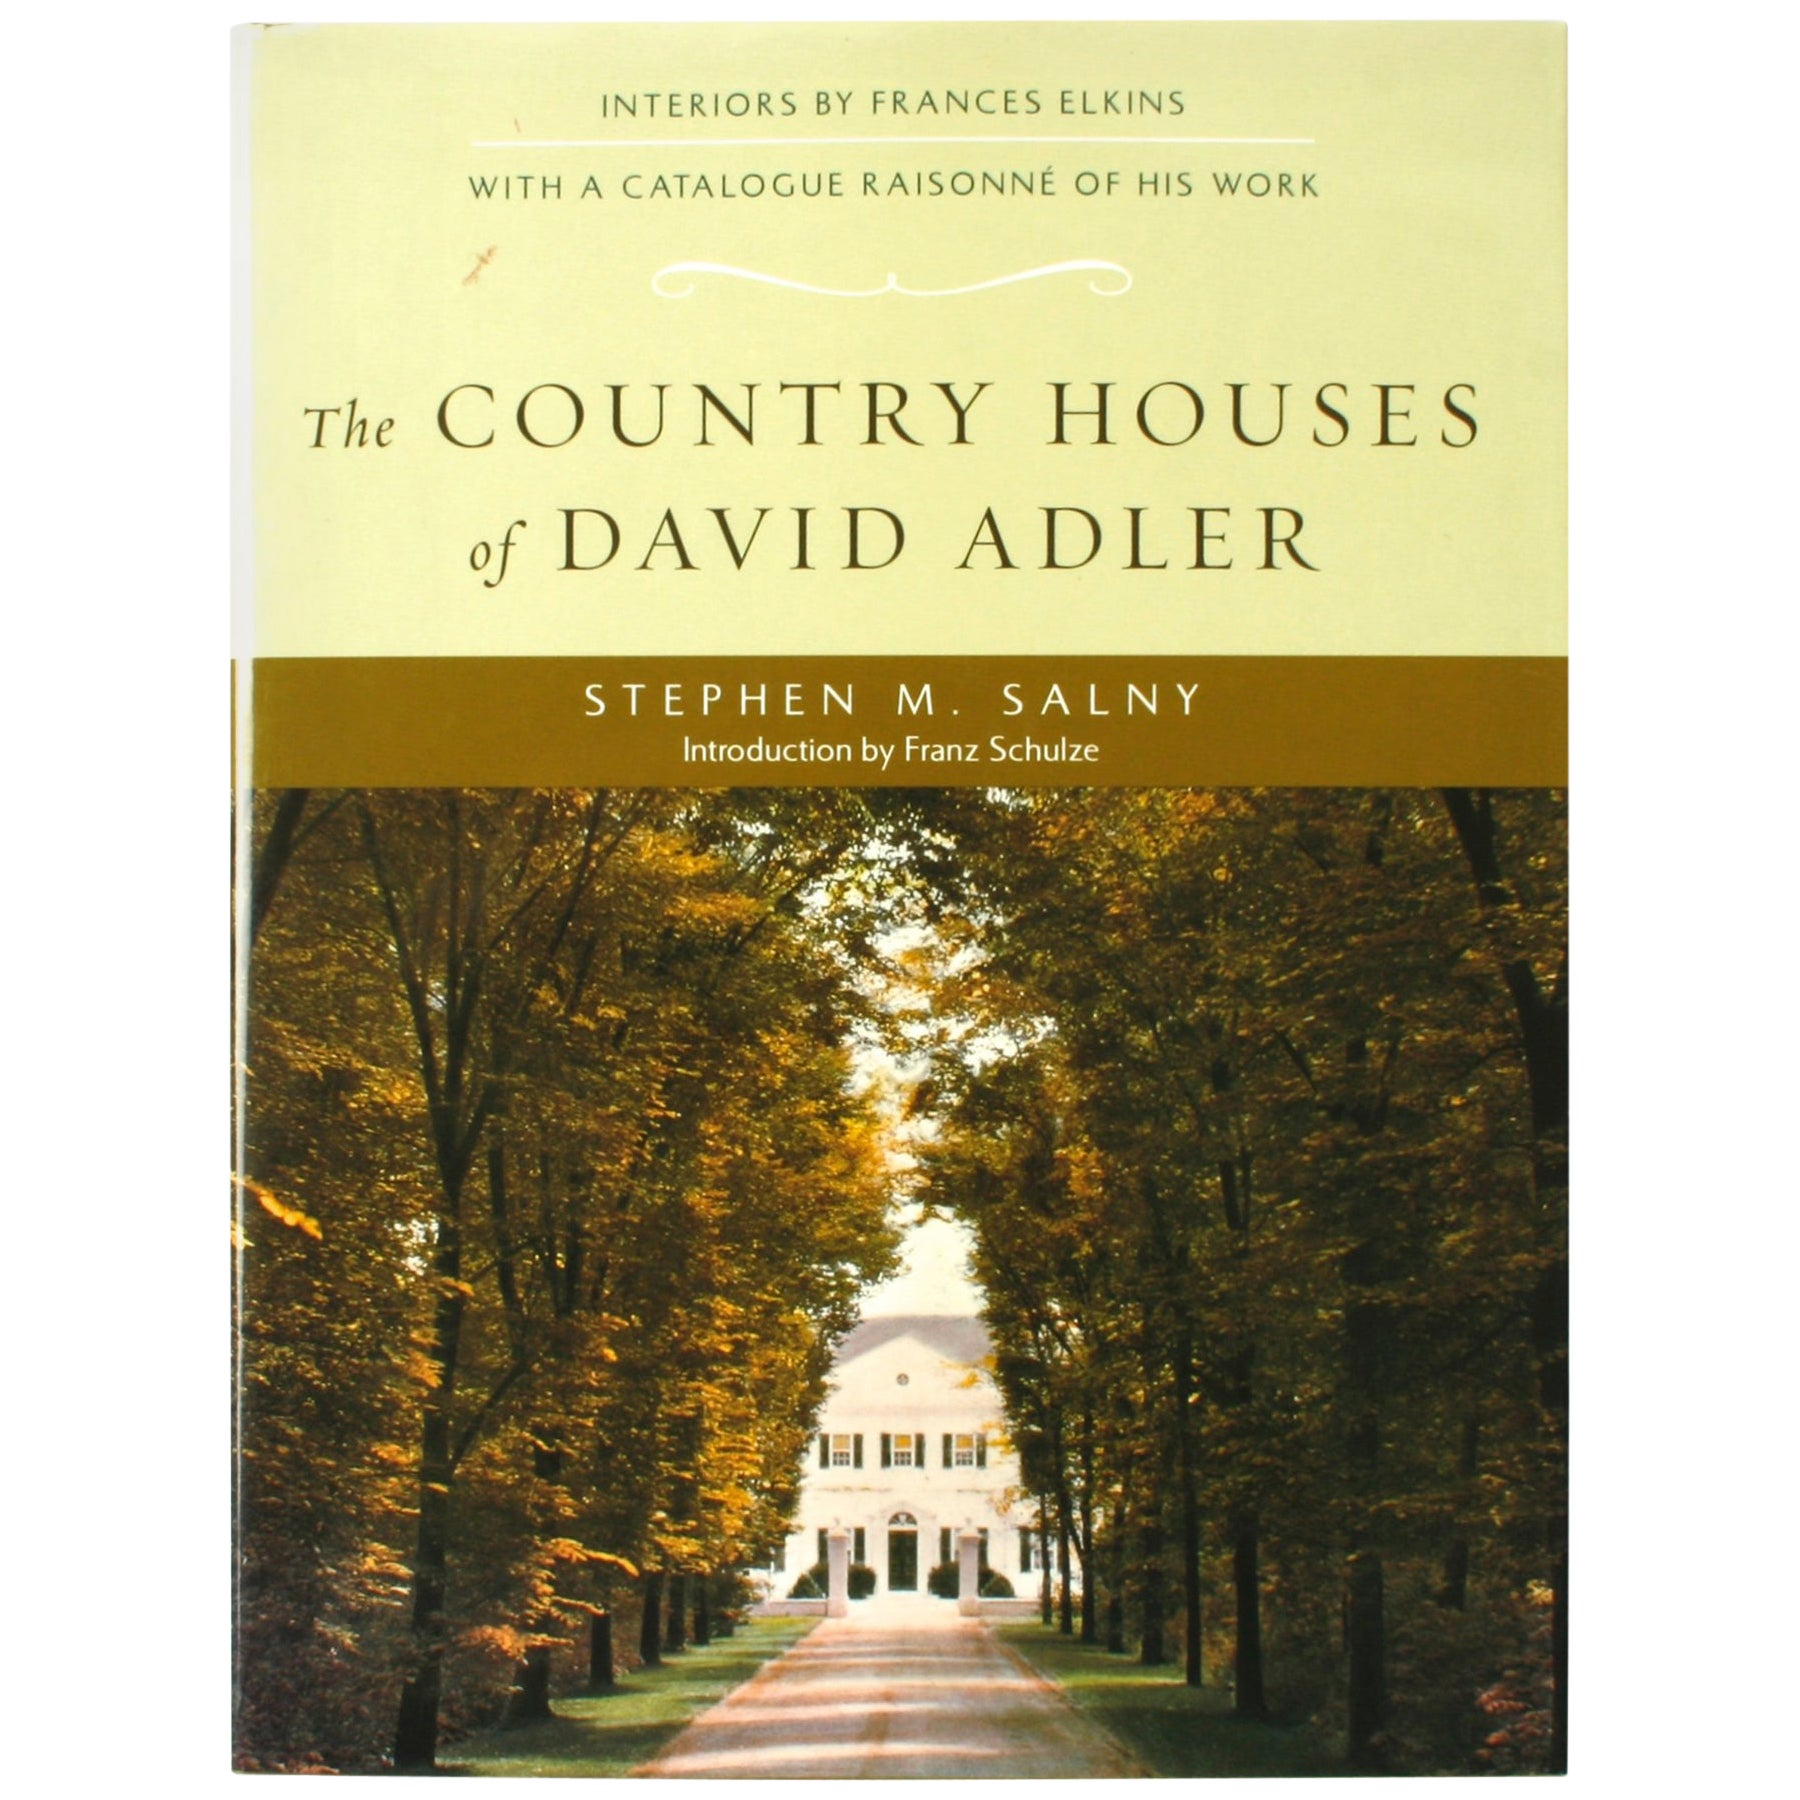 The Country Houses of David Adler by Stephen M. Salny, First Edition